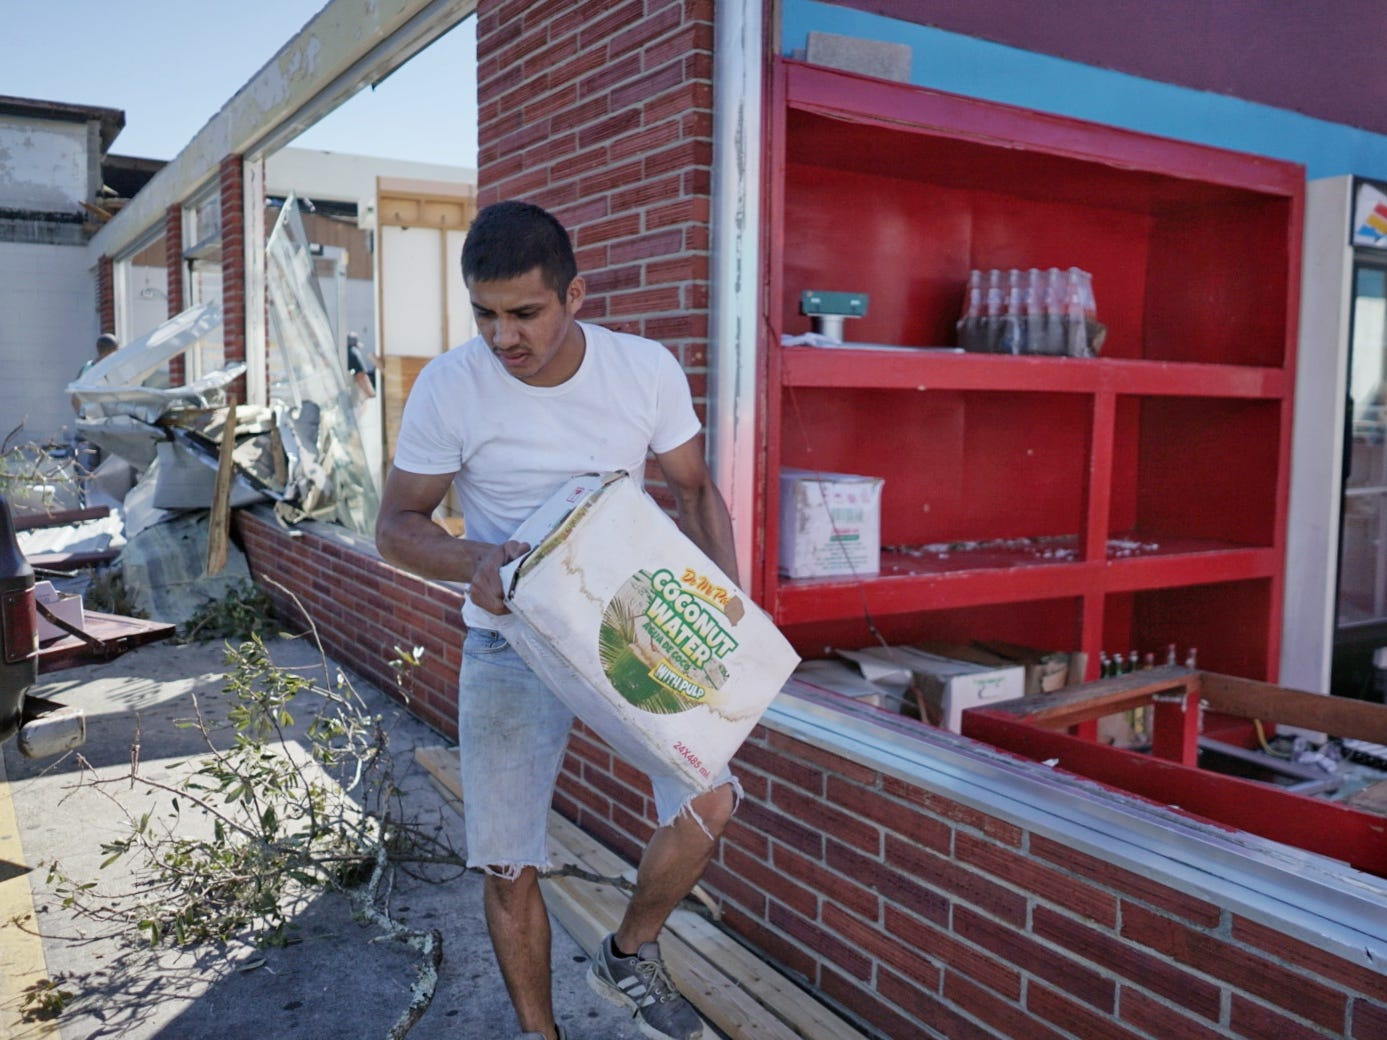 Victor Sanchez helps remove items from what's left of the family's business on in in Mexico Beach, Fla. Oct. 12, 2018.